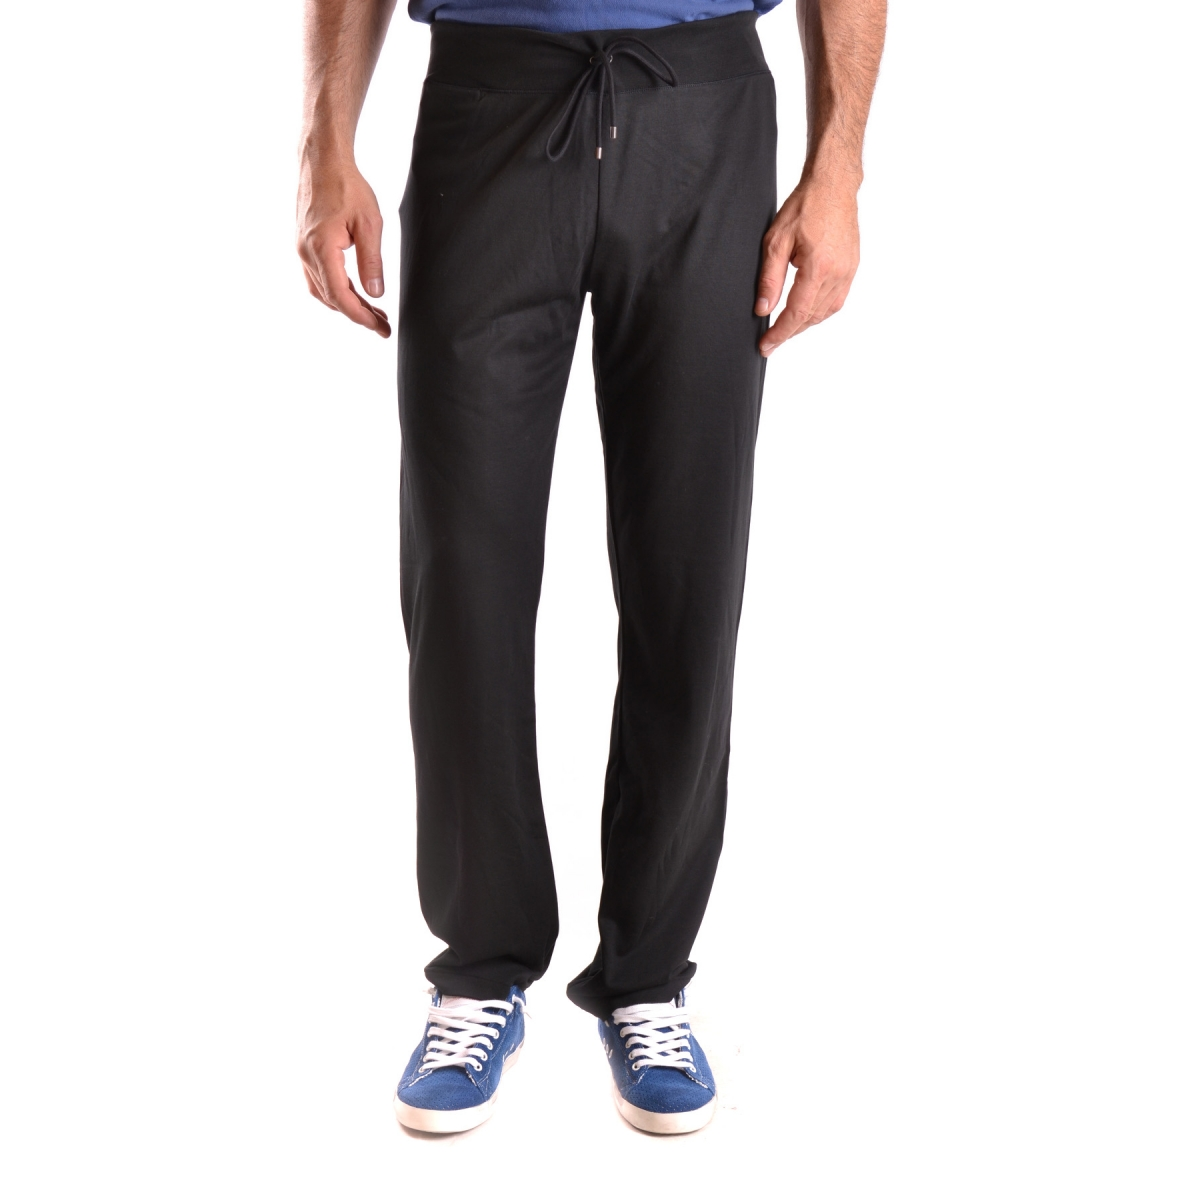 Pantaloni Ralph Lauren 26762IT -40%